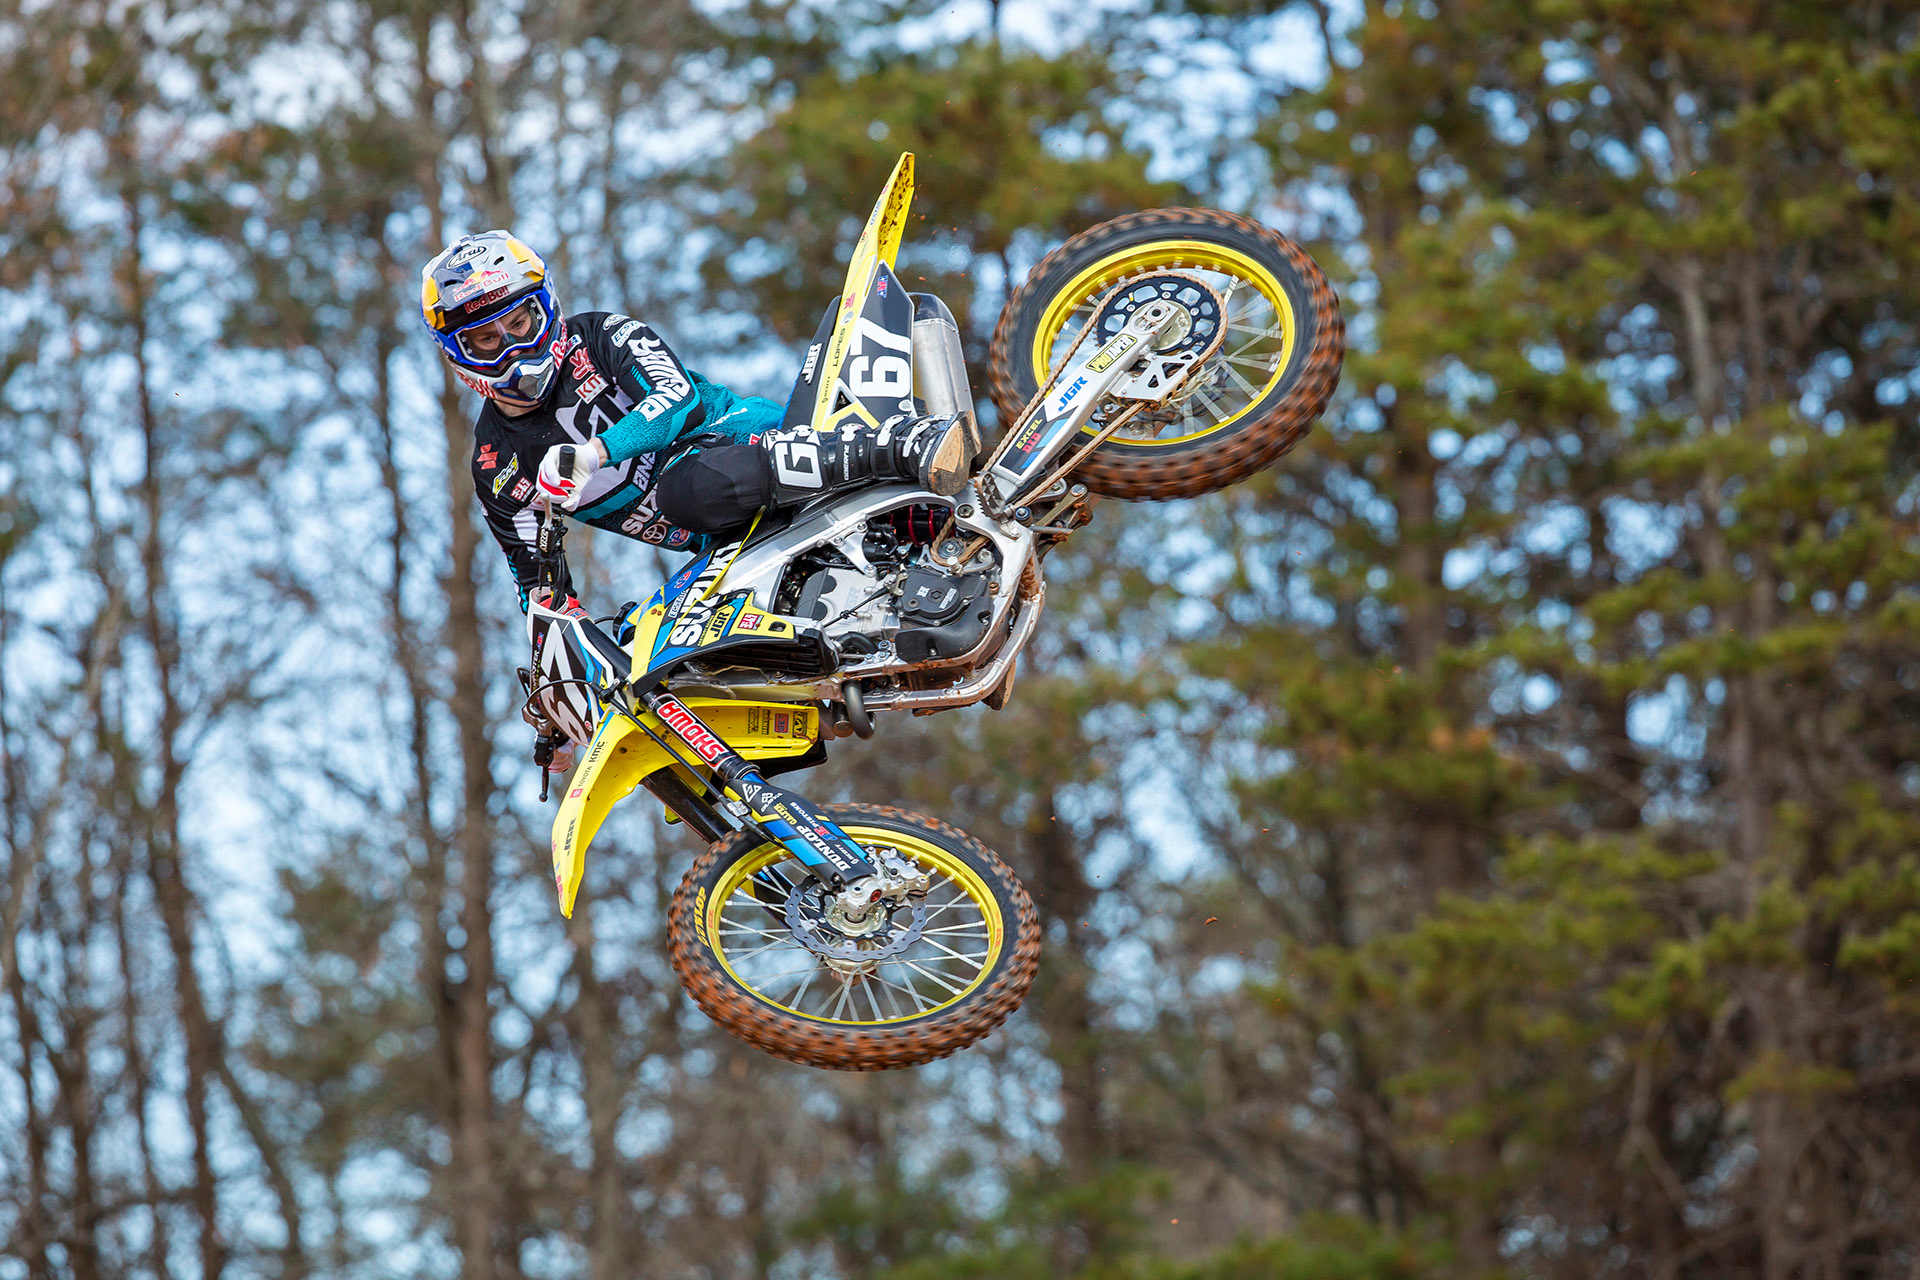 Brazil's Enzo Lopes (#67) is also on the new RM-Z250 - JGRMX